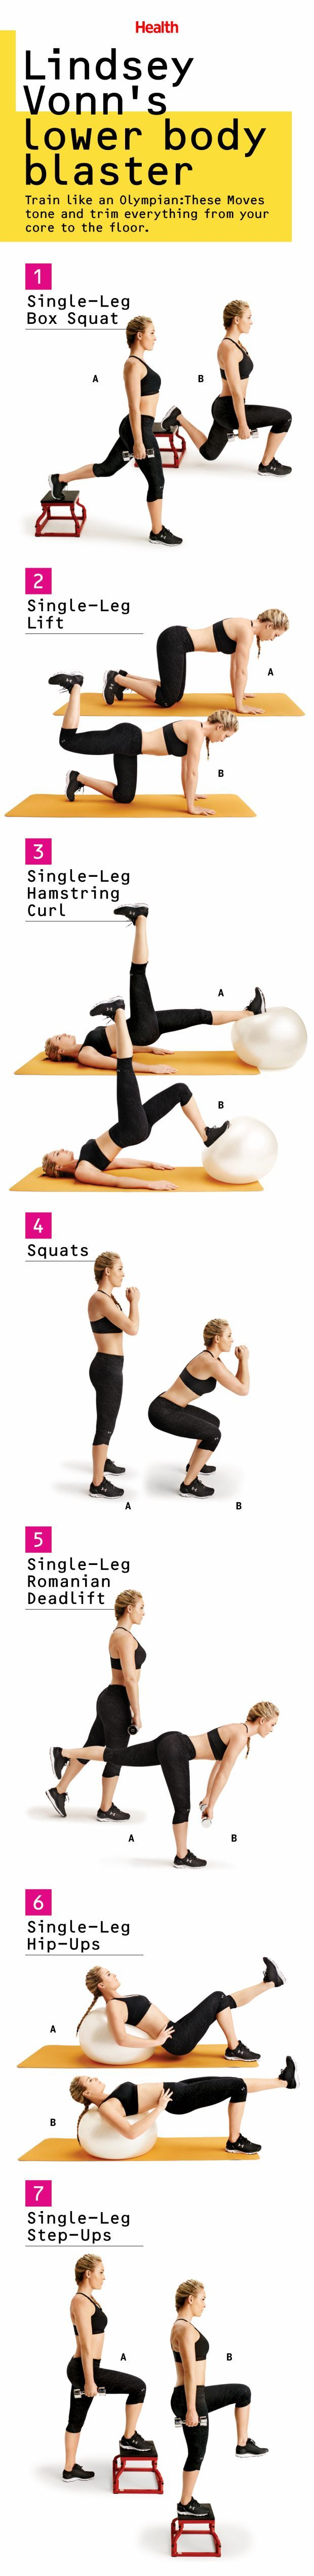 This lower-body workout torches calories and builds muscle in all the right places. Follow along for simple but effective moves that you can do to tone your lower body. | Health.com